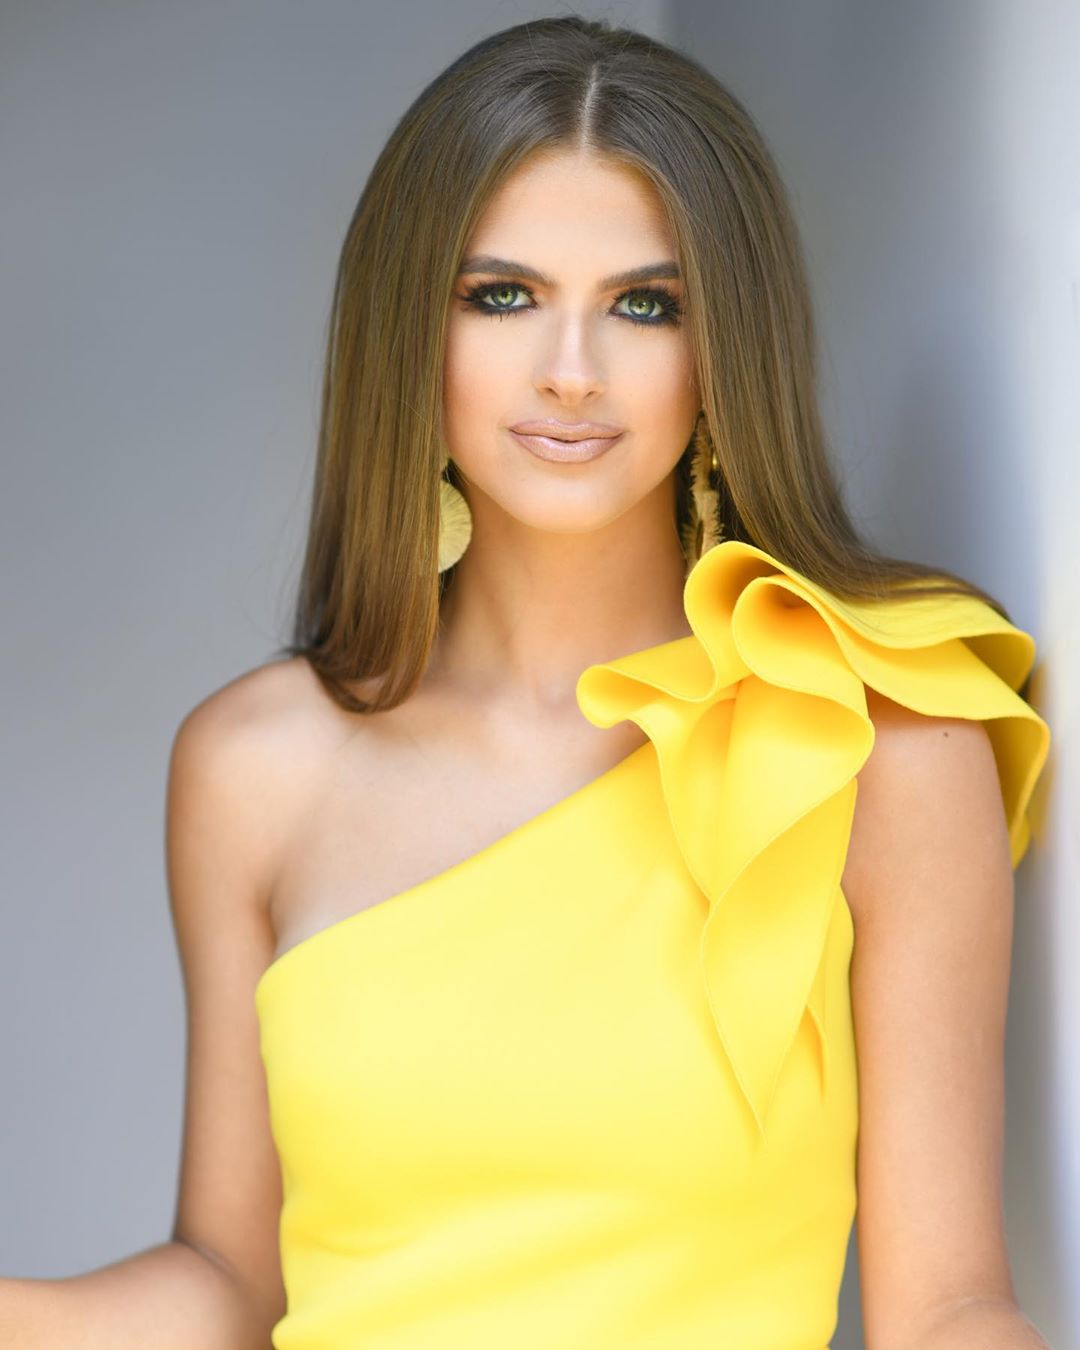 candidatas a miss teen usa 2020. final: 7 nov. preliminary competition a partir pag. 21. Hddgrhck